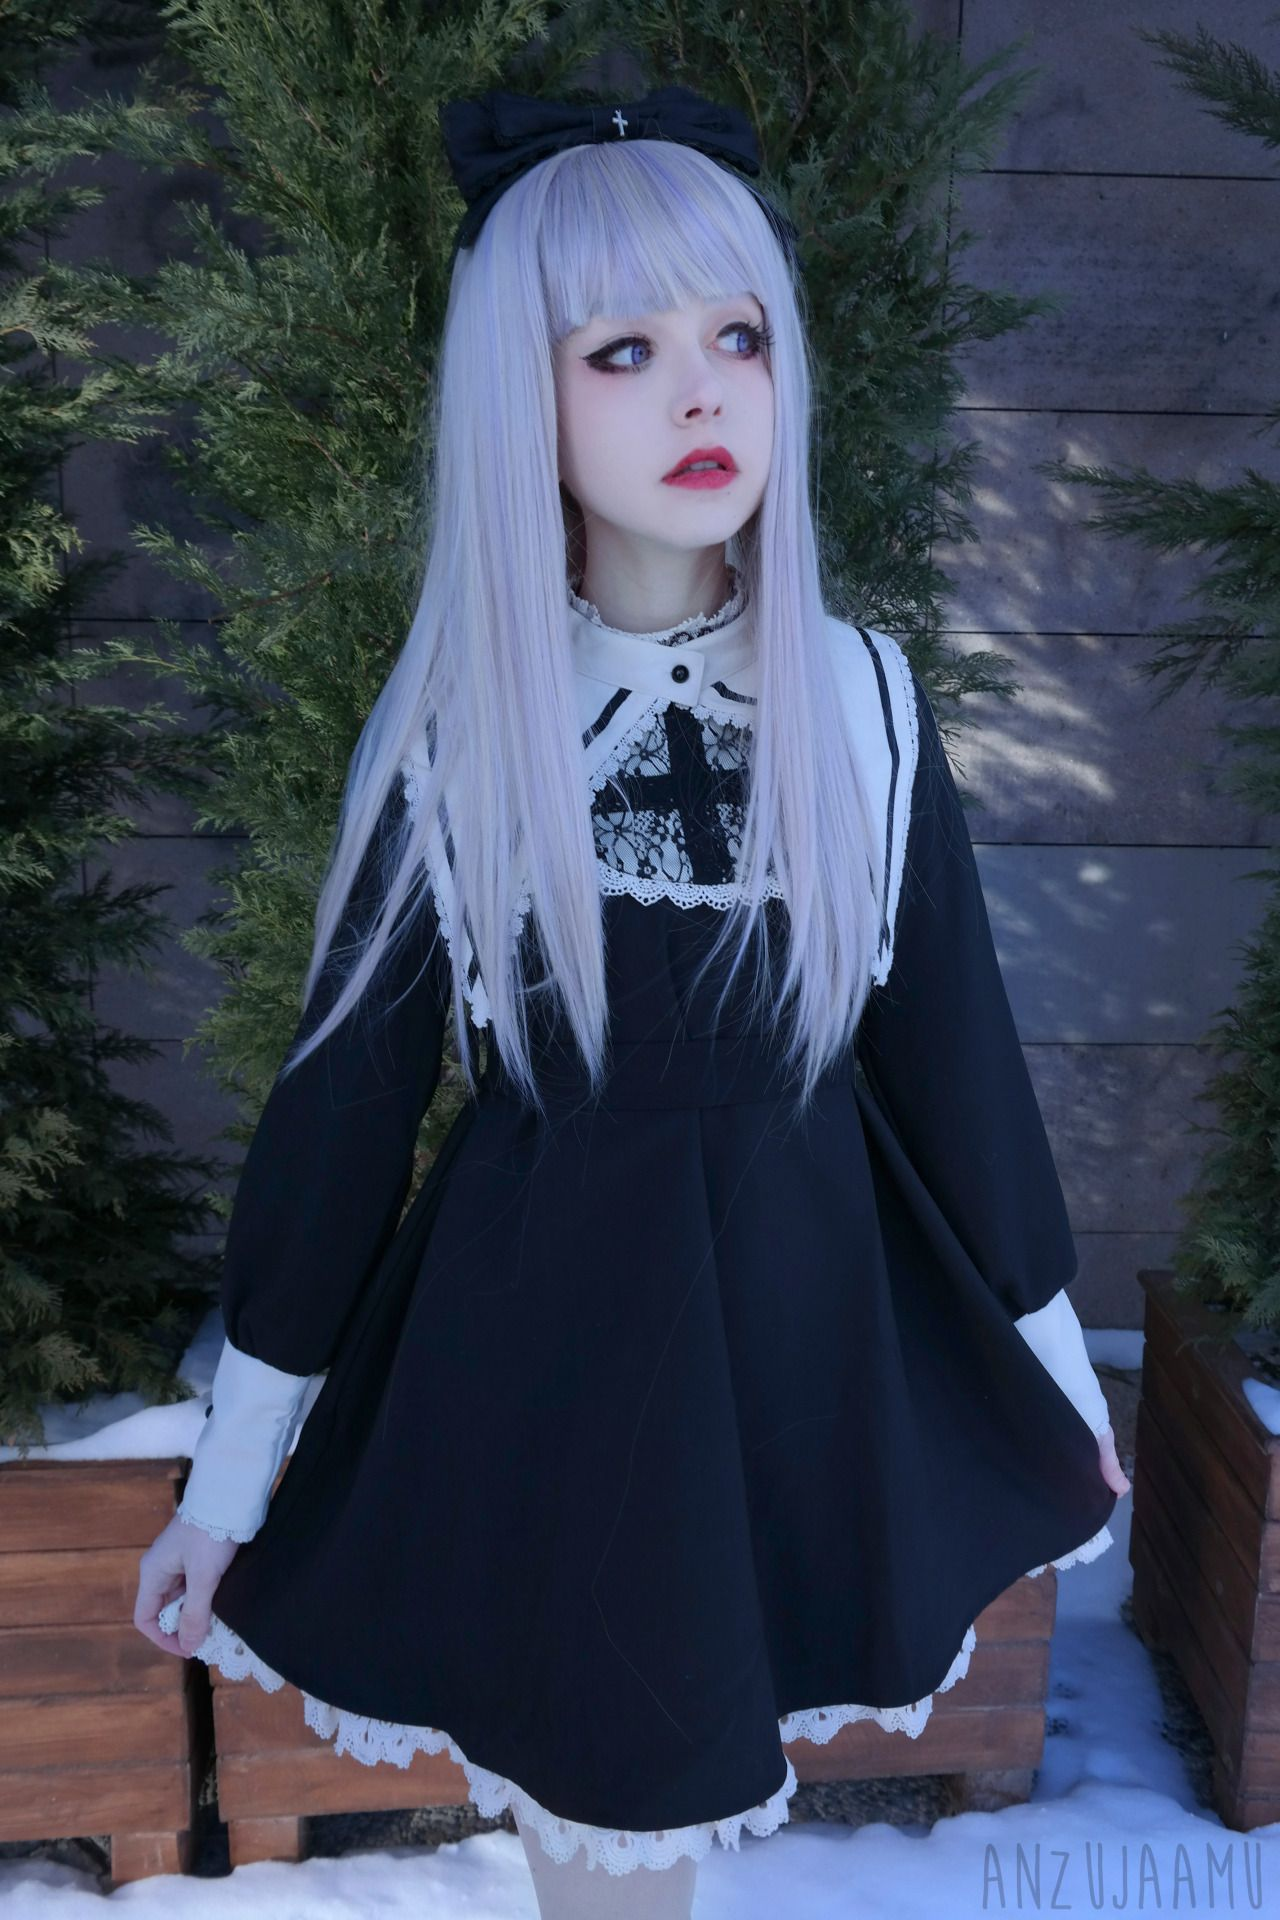 1000 ideas about pastel goth makeup on pinterest nu goth makeup - Nu Goth She S Extremely Doll Like Almost Gothloli Gothic Lolita